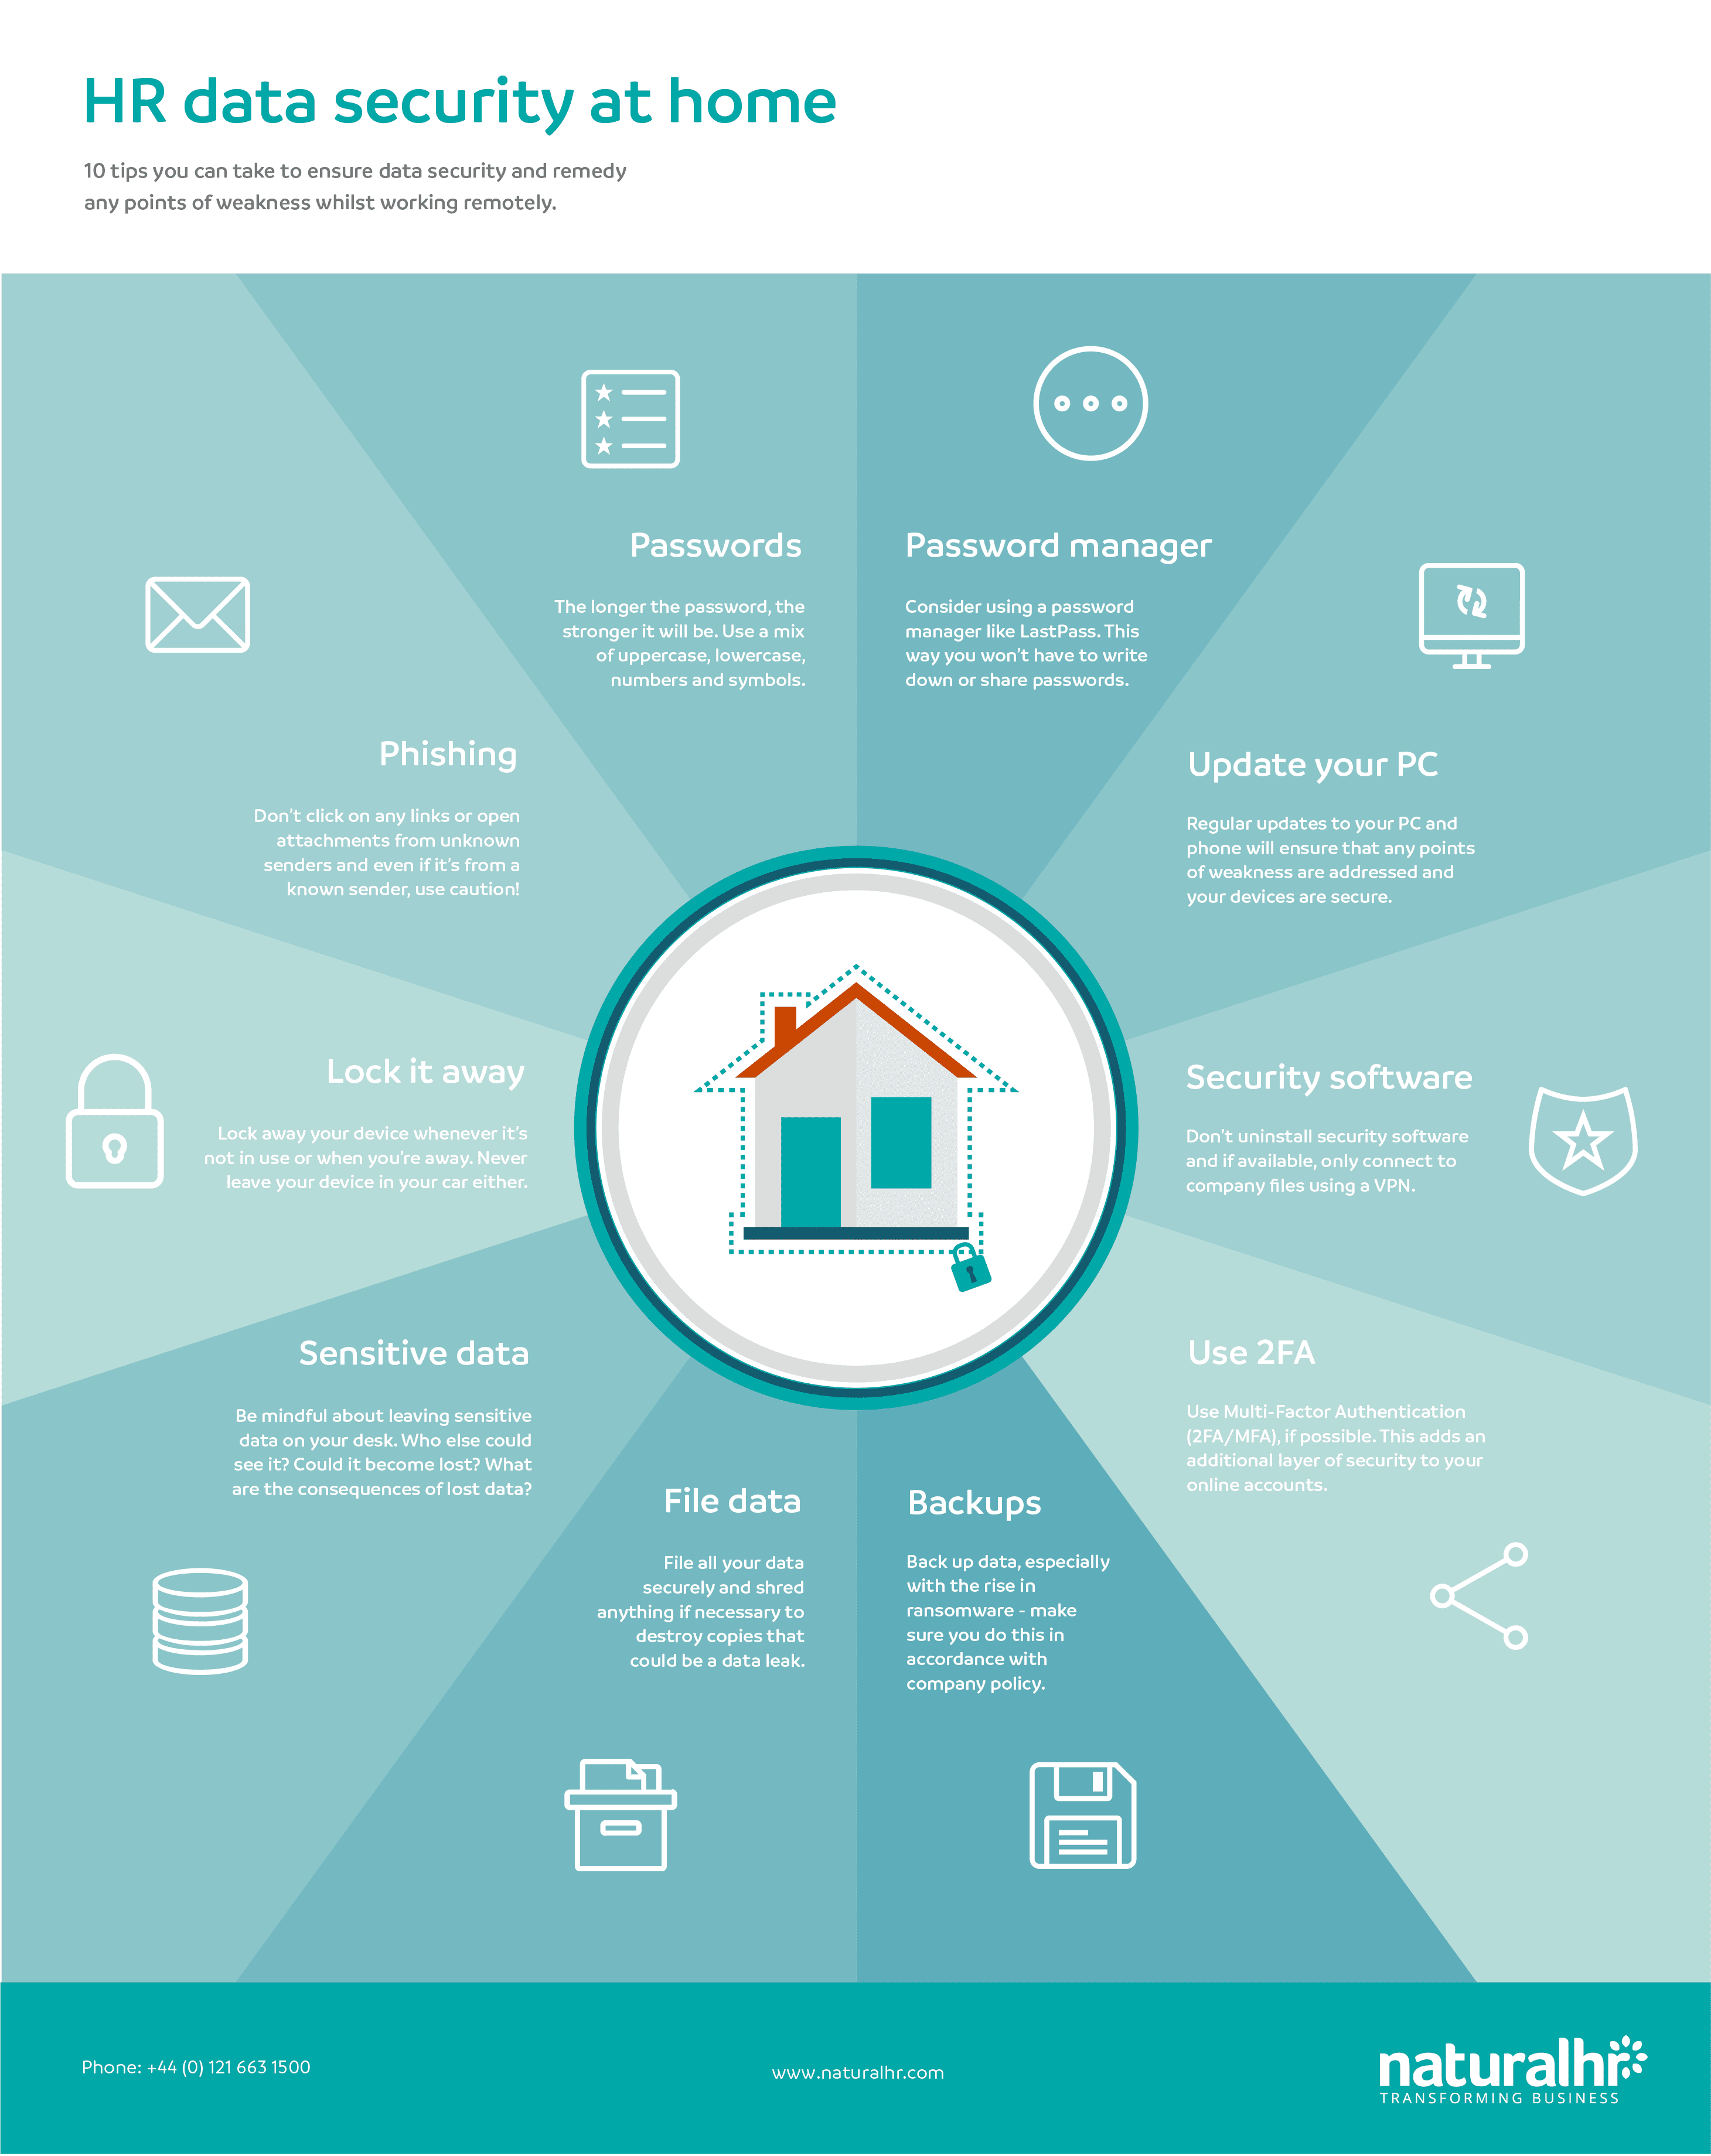 HR data security at home infographic